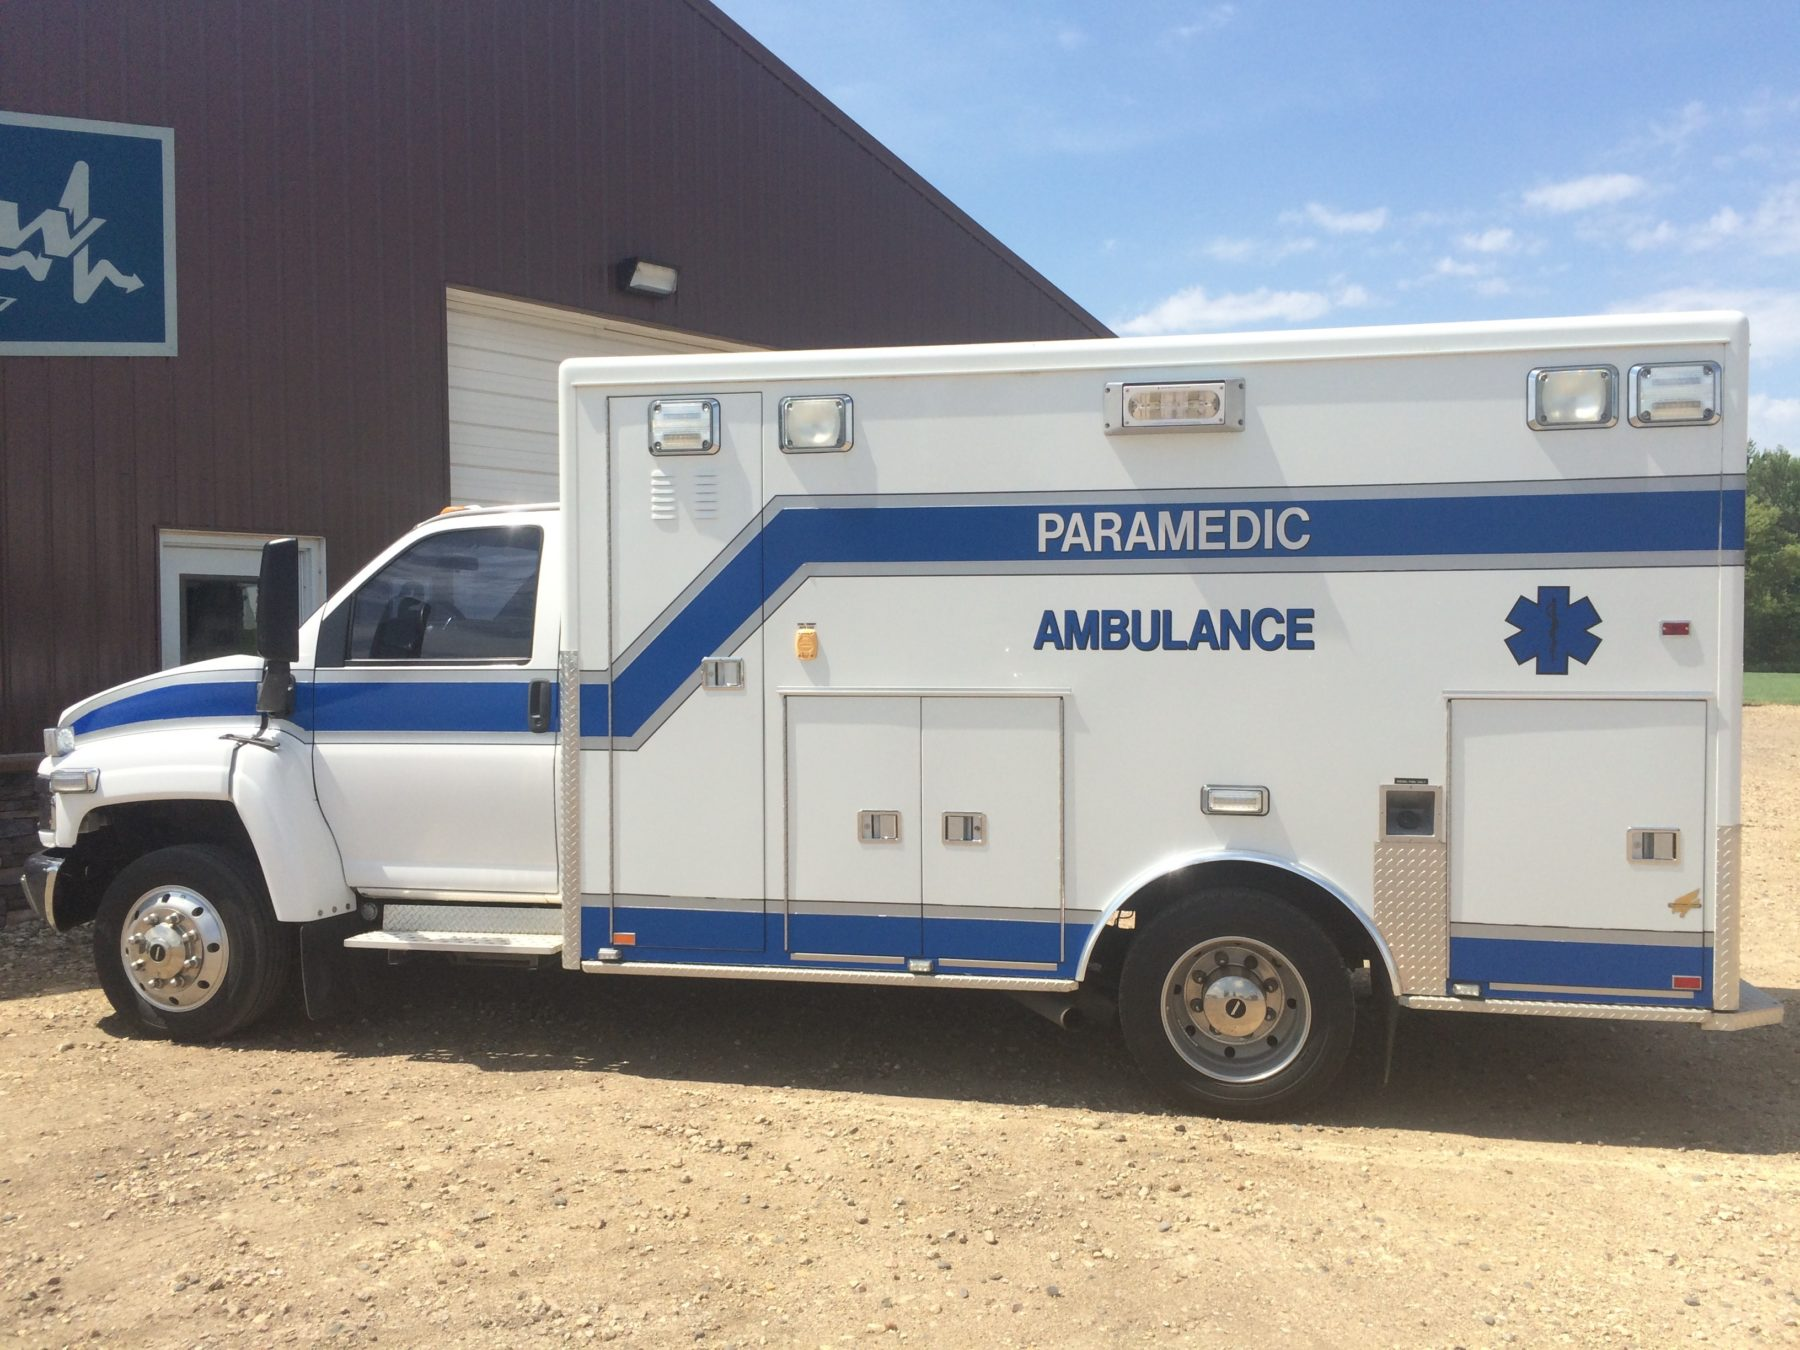 2006 Chevrolet C4500 Heavy Duty Ambulance For Sale – Picture 4